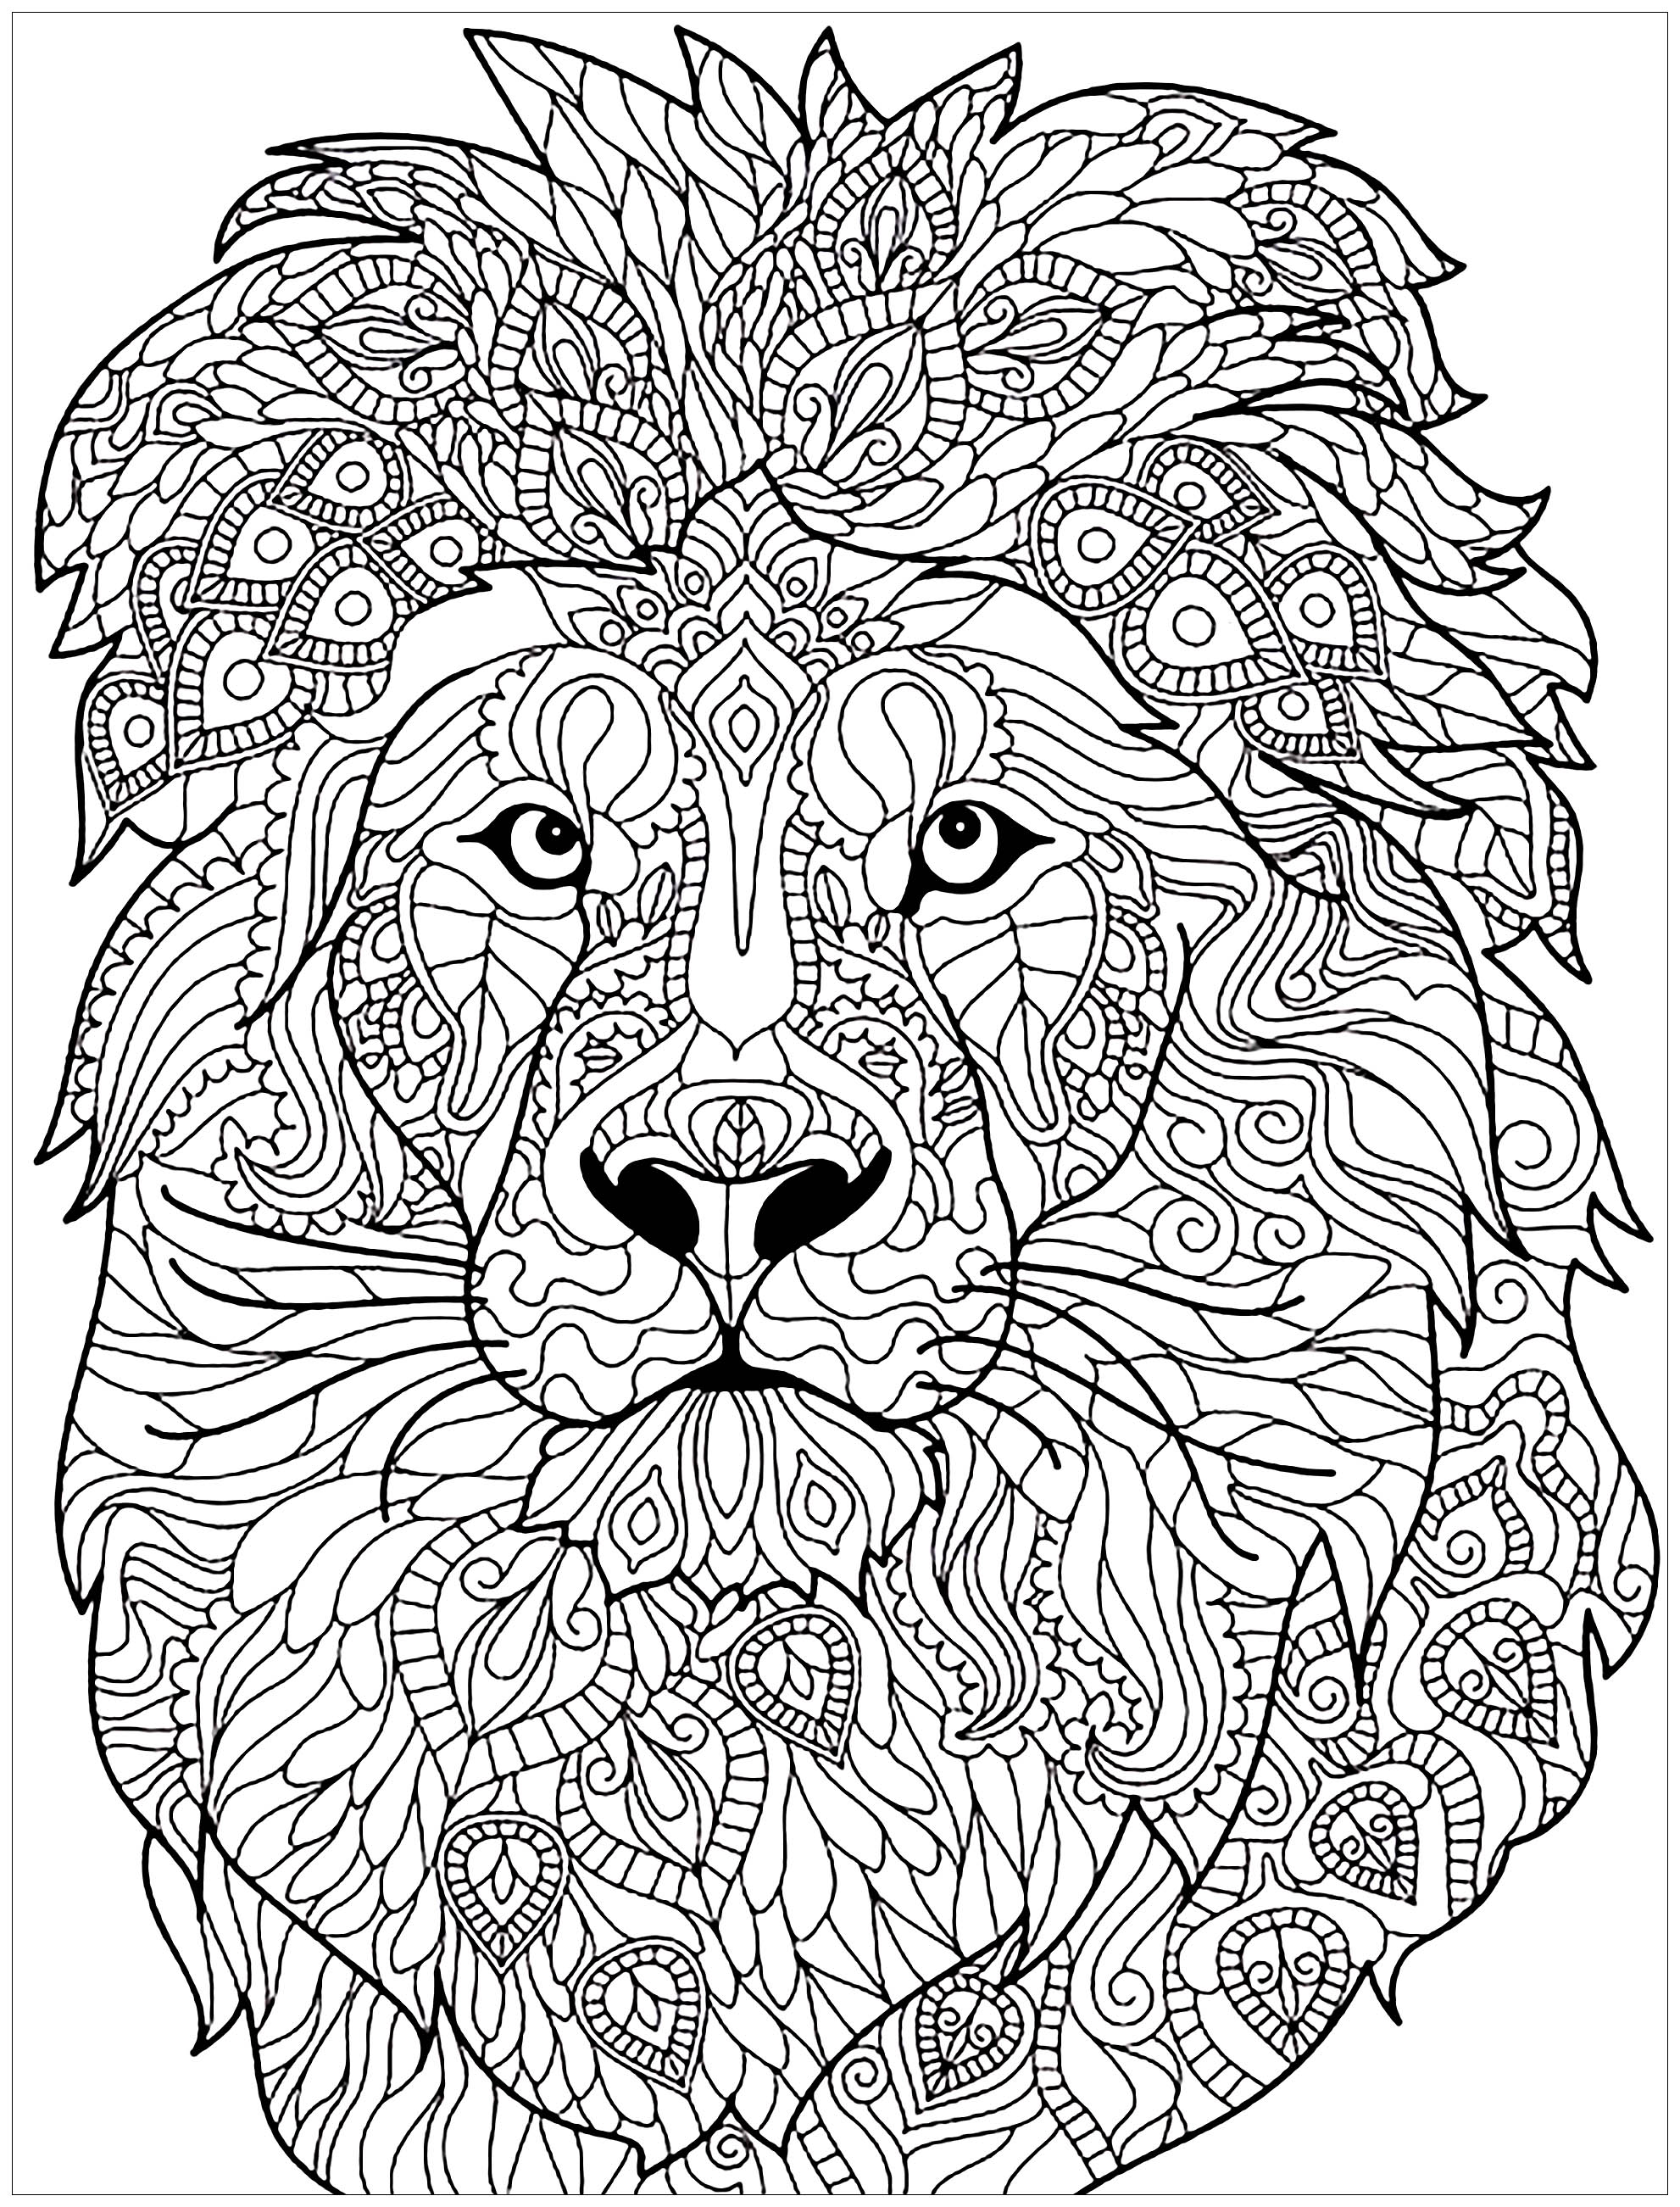 Coloring Page Lion Complex Patterns Head With Very